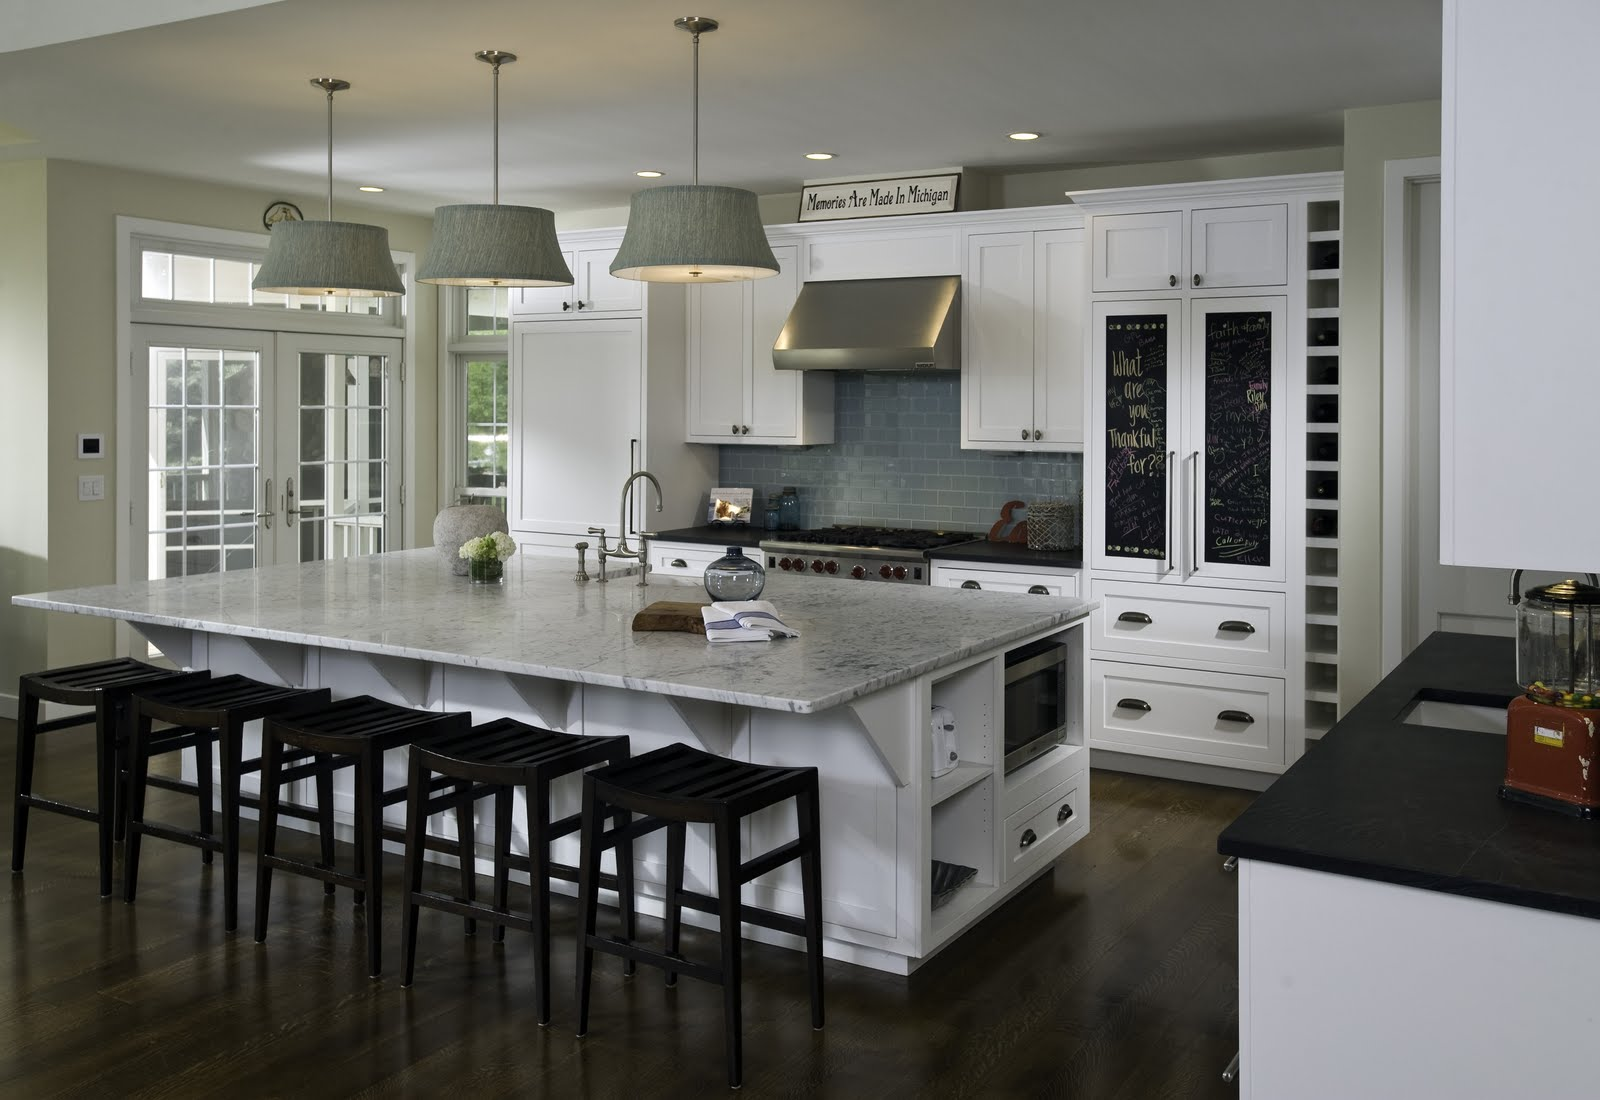 Kitchen Magazine Impressive Of Kitchen Wall Colors with White Cabinets Photo